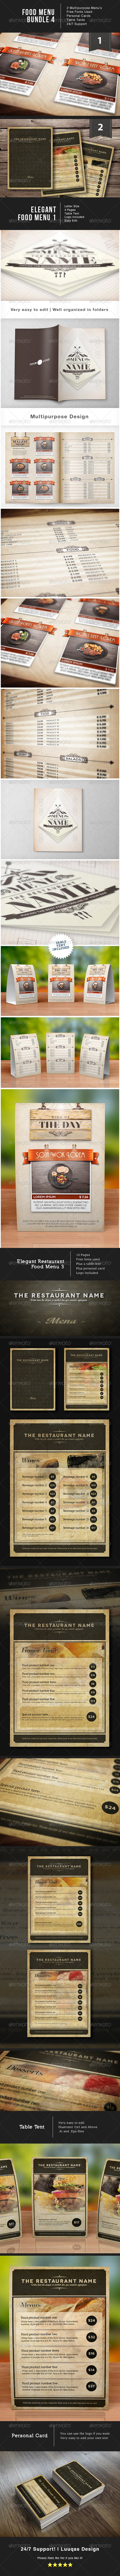 Food Menu Bundle 4 - Food Menus Print Templates